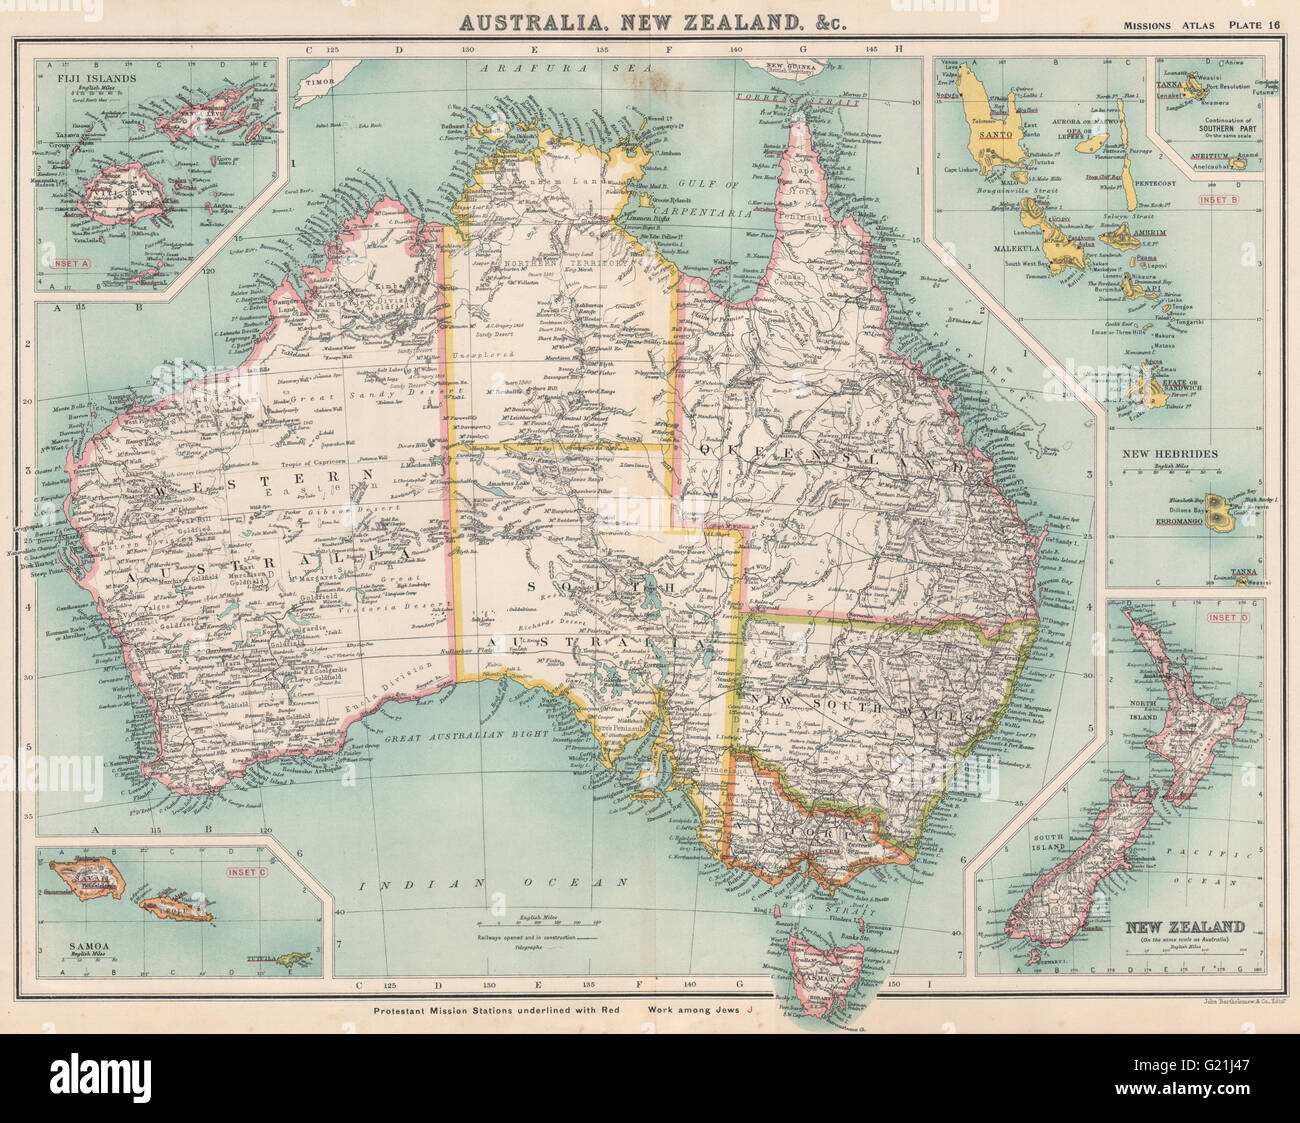 Map Of Australia New Zealand And Fiji.Australia New Zealand Fiji New Hebrides Protestant Mission Stations